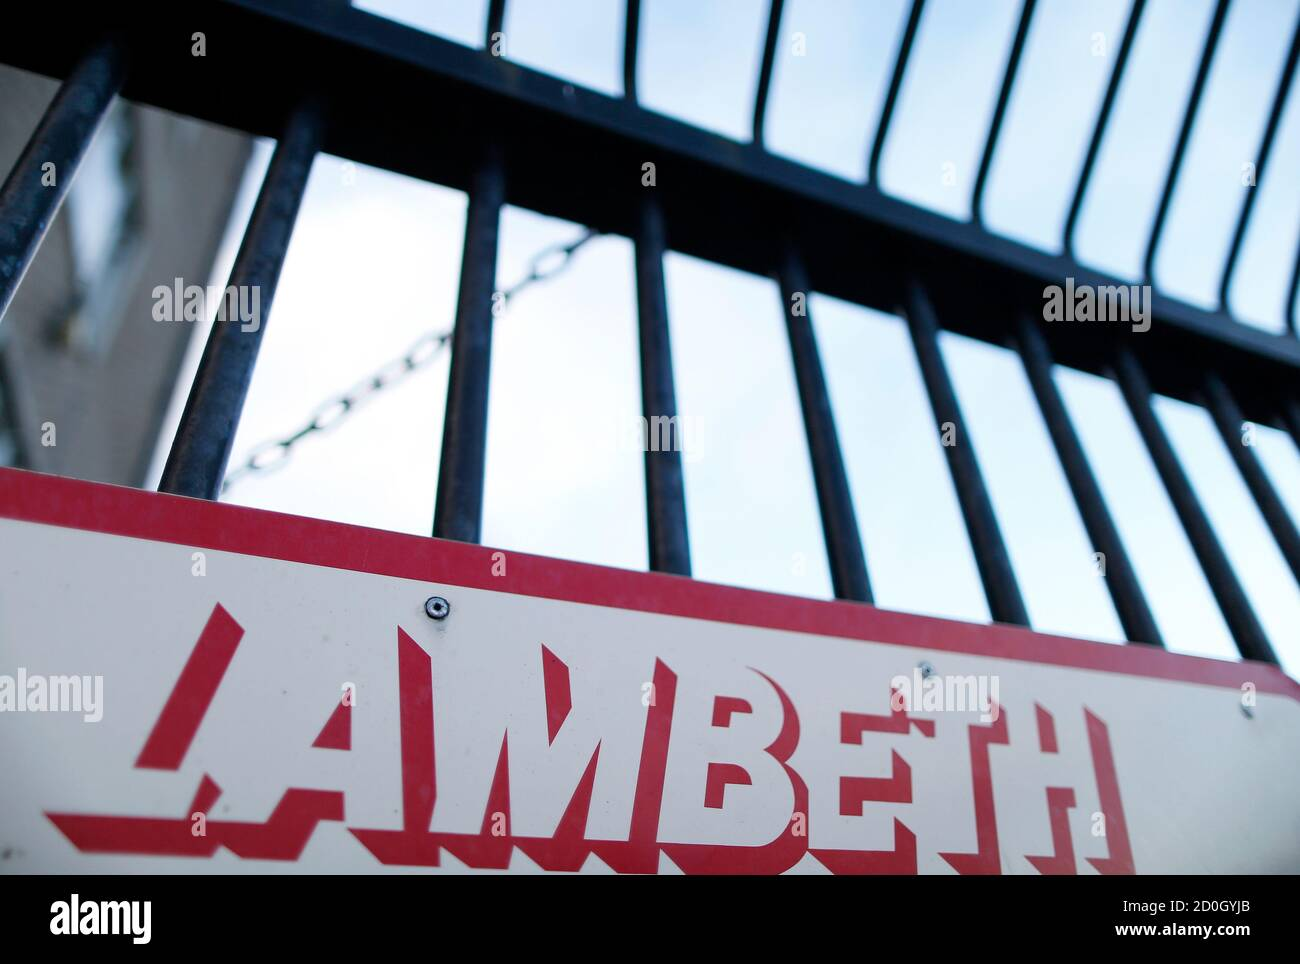 A sign for a Lambeth council service hangs on the railings of a car park in south London November 22, 2013. Three women enslaved for 30 years have been rescued from a house in London including one who has spent her entire life in domestic servitude, police said on Thursday. Police attended an address in Lambeth, the Metropolitan Police said in a statement.   REUTERS/Andrew Winning (BRITAIN - Tags: CRIME LAW SOCIETY) Stock Photo